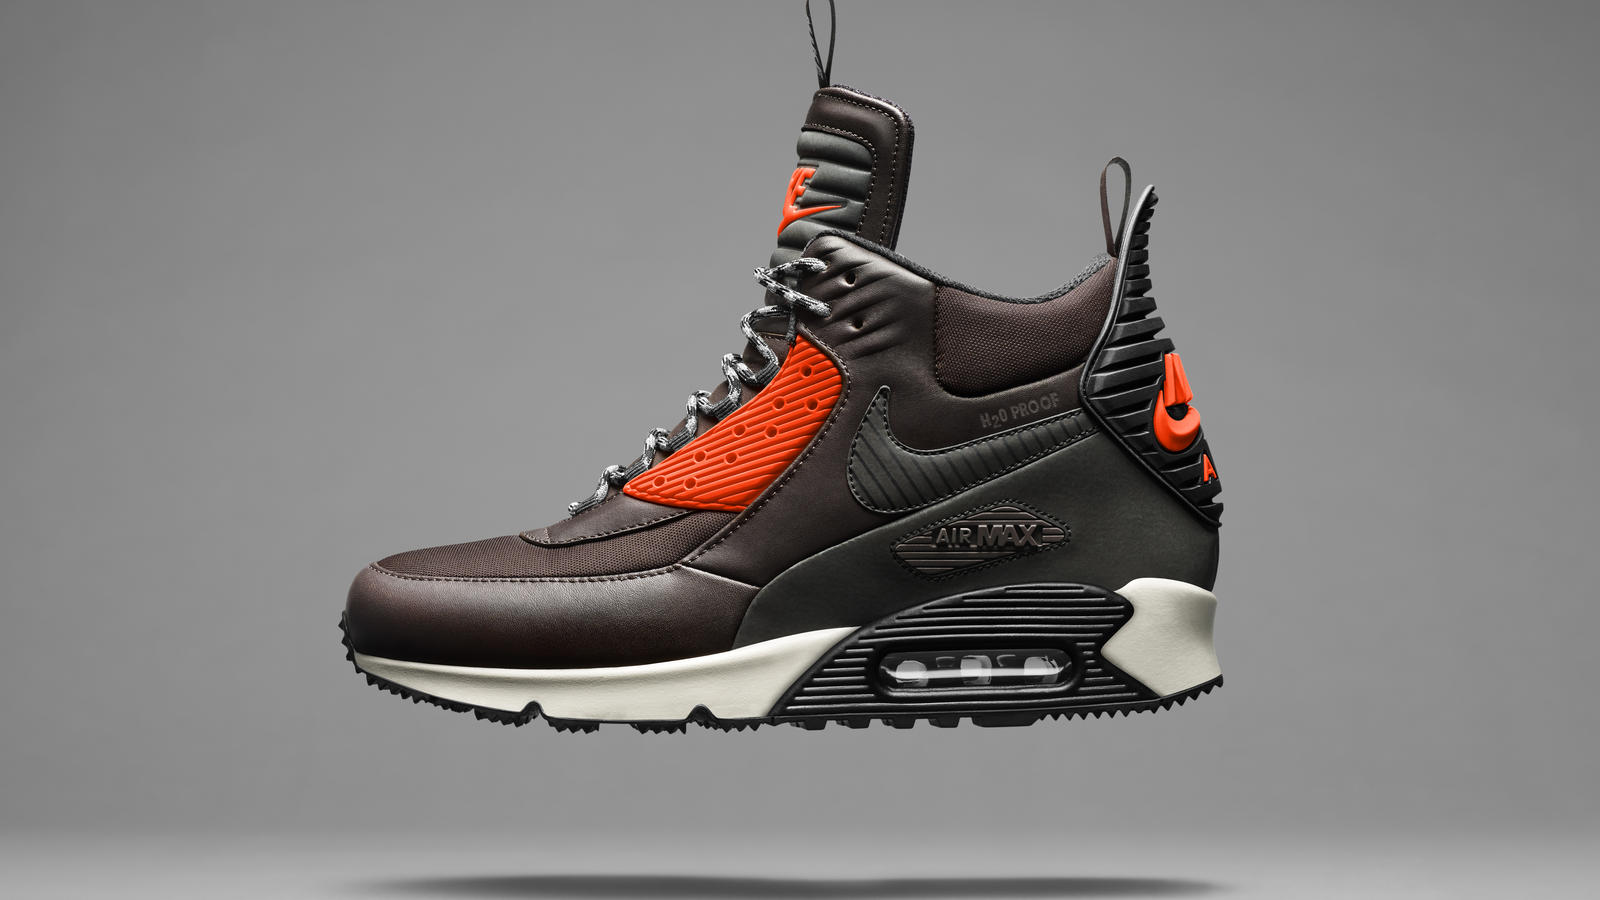 cheaper f4bba 296c4 Nike Cheap Air Max 90 Shoes Sale, Buy Air Max 90 Online 2017